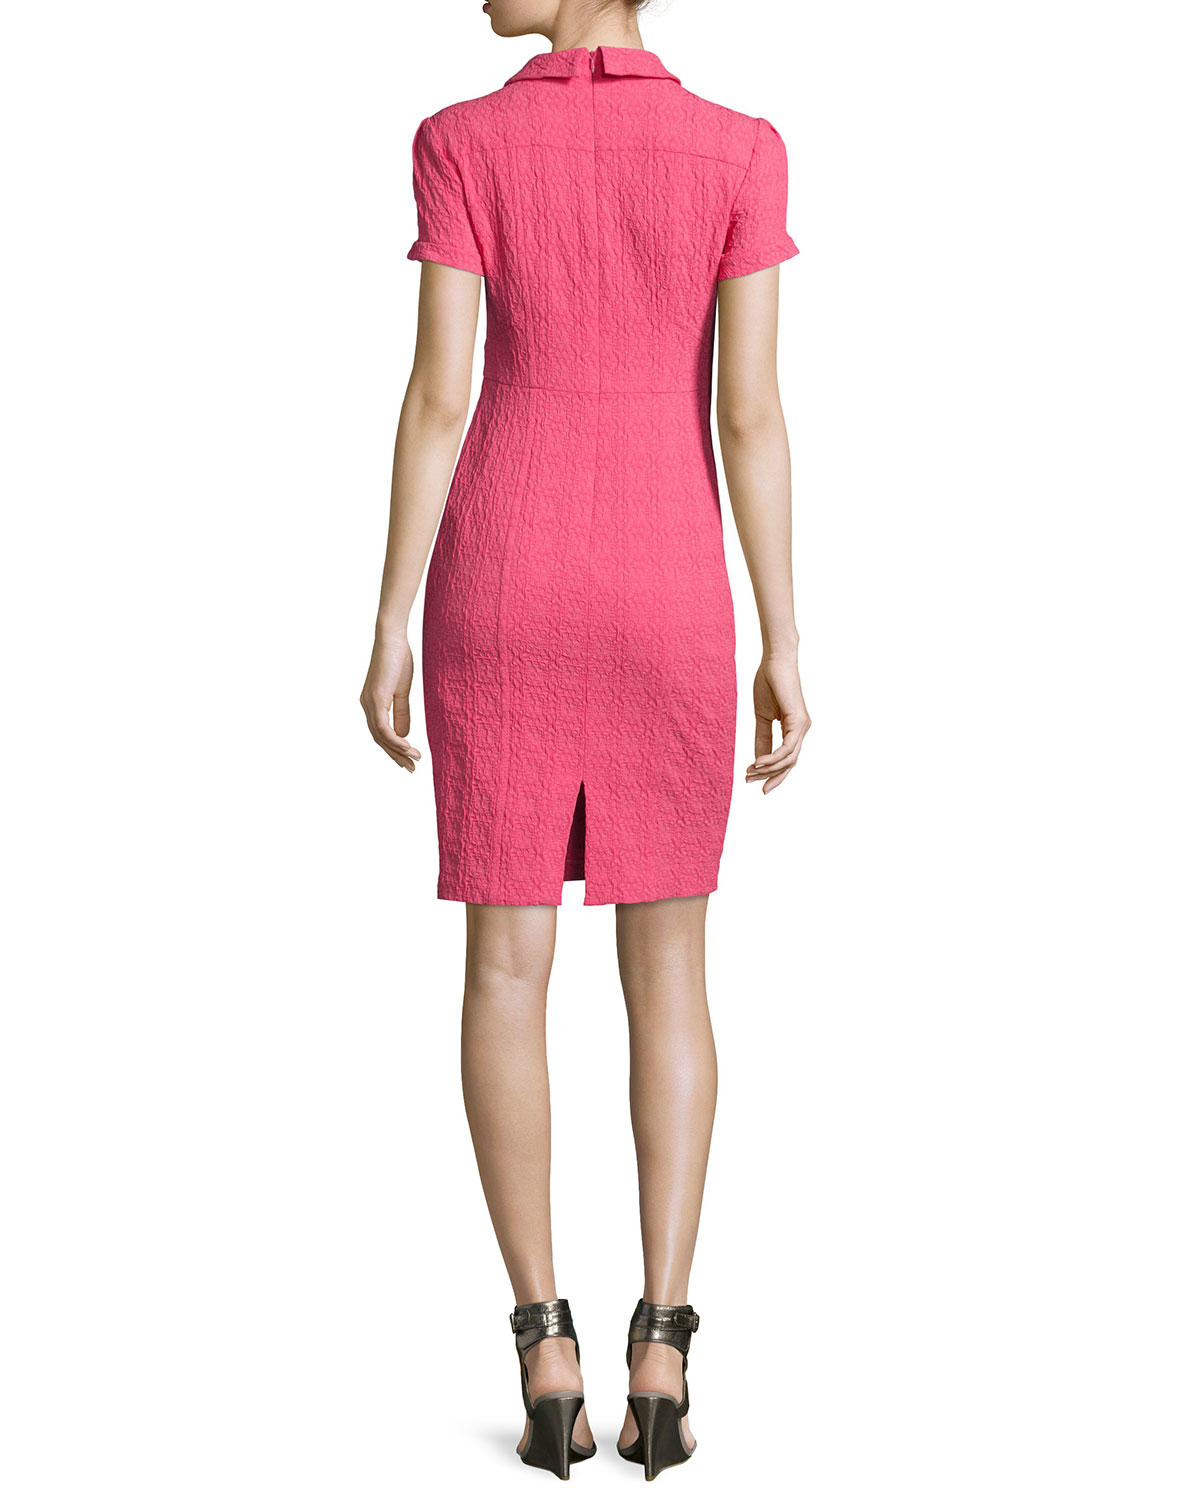 Nanette lepore Short-sleeve Textured Sheath Dress in Pink ...